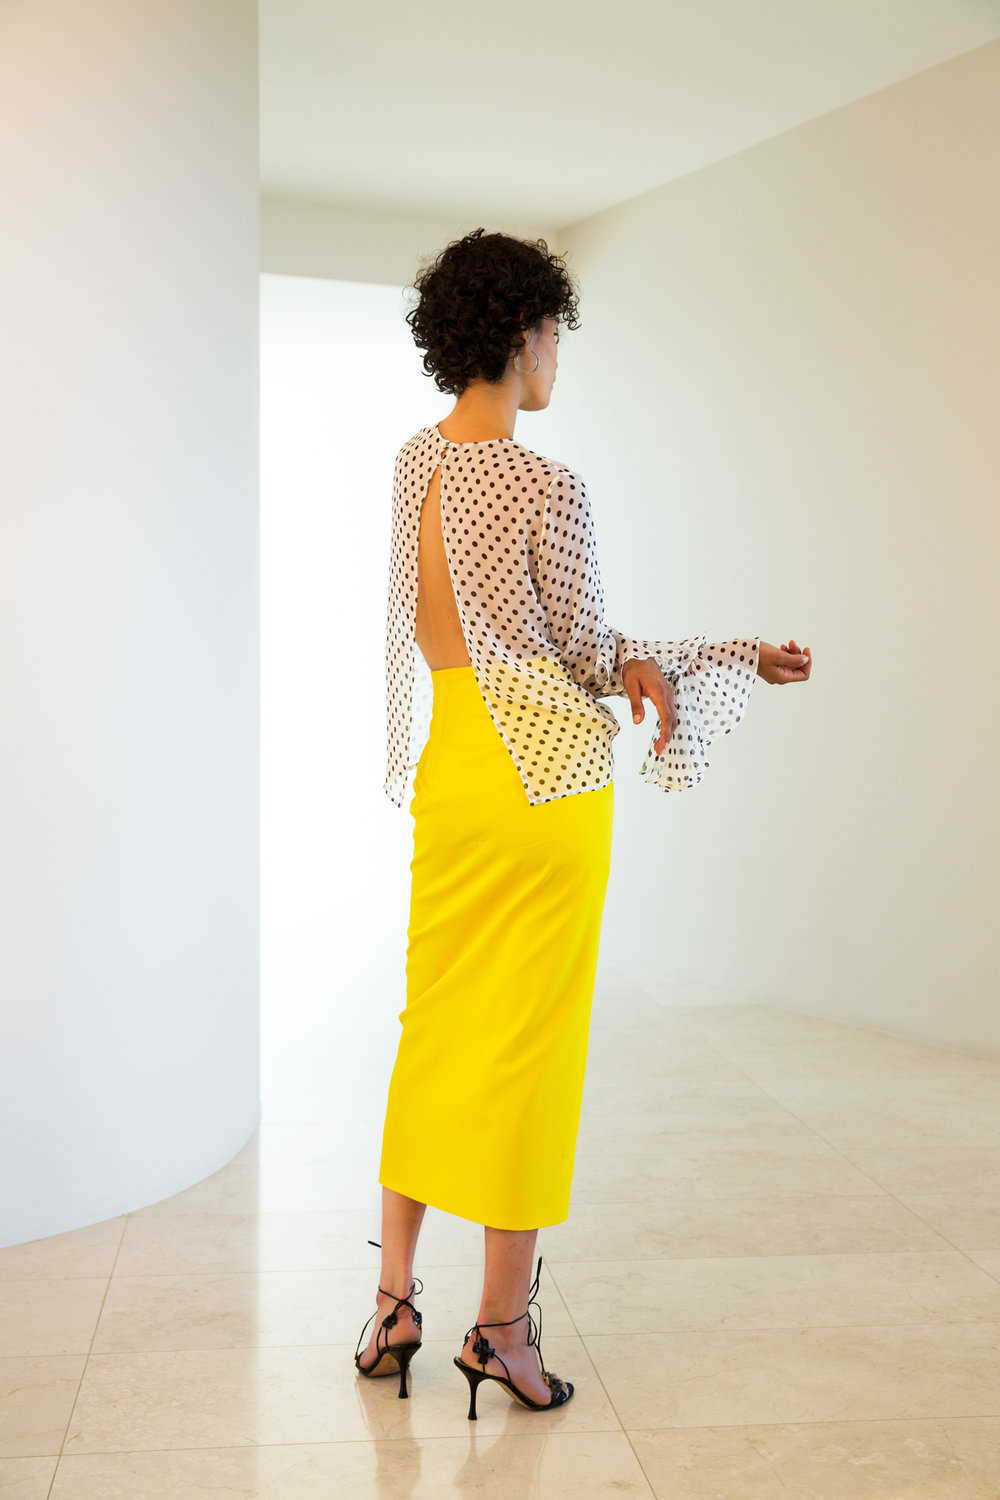 PF_PolkaTop_SplitSkirt_Resort18LookBook0096.jpg